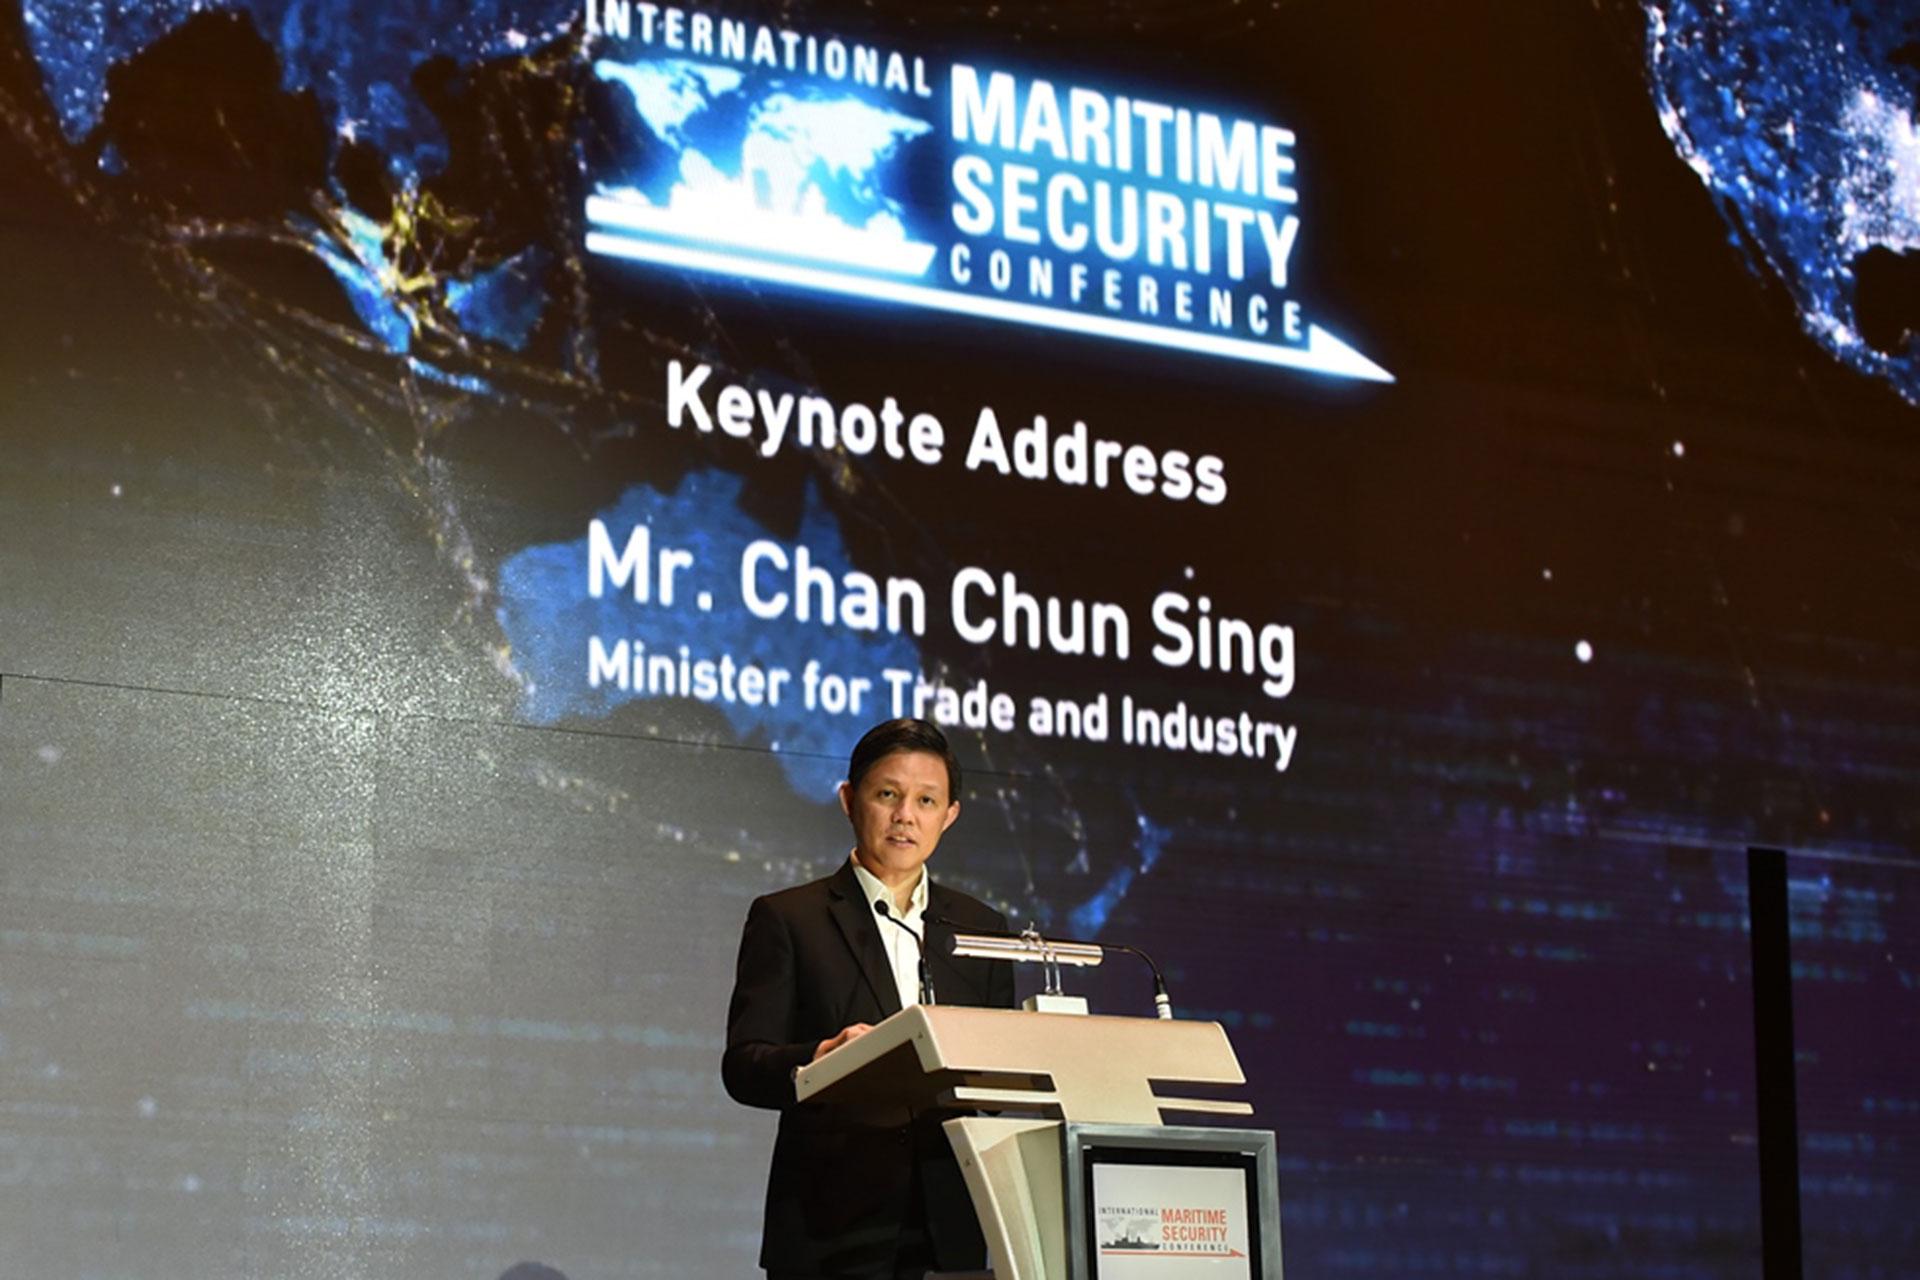 Minister for Trade and Industry Mr Chan Chun Sing delivering the keynote address at the International Maritime Security Conference (IMSC) opening dinner at JW Marriott Hotel.